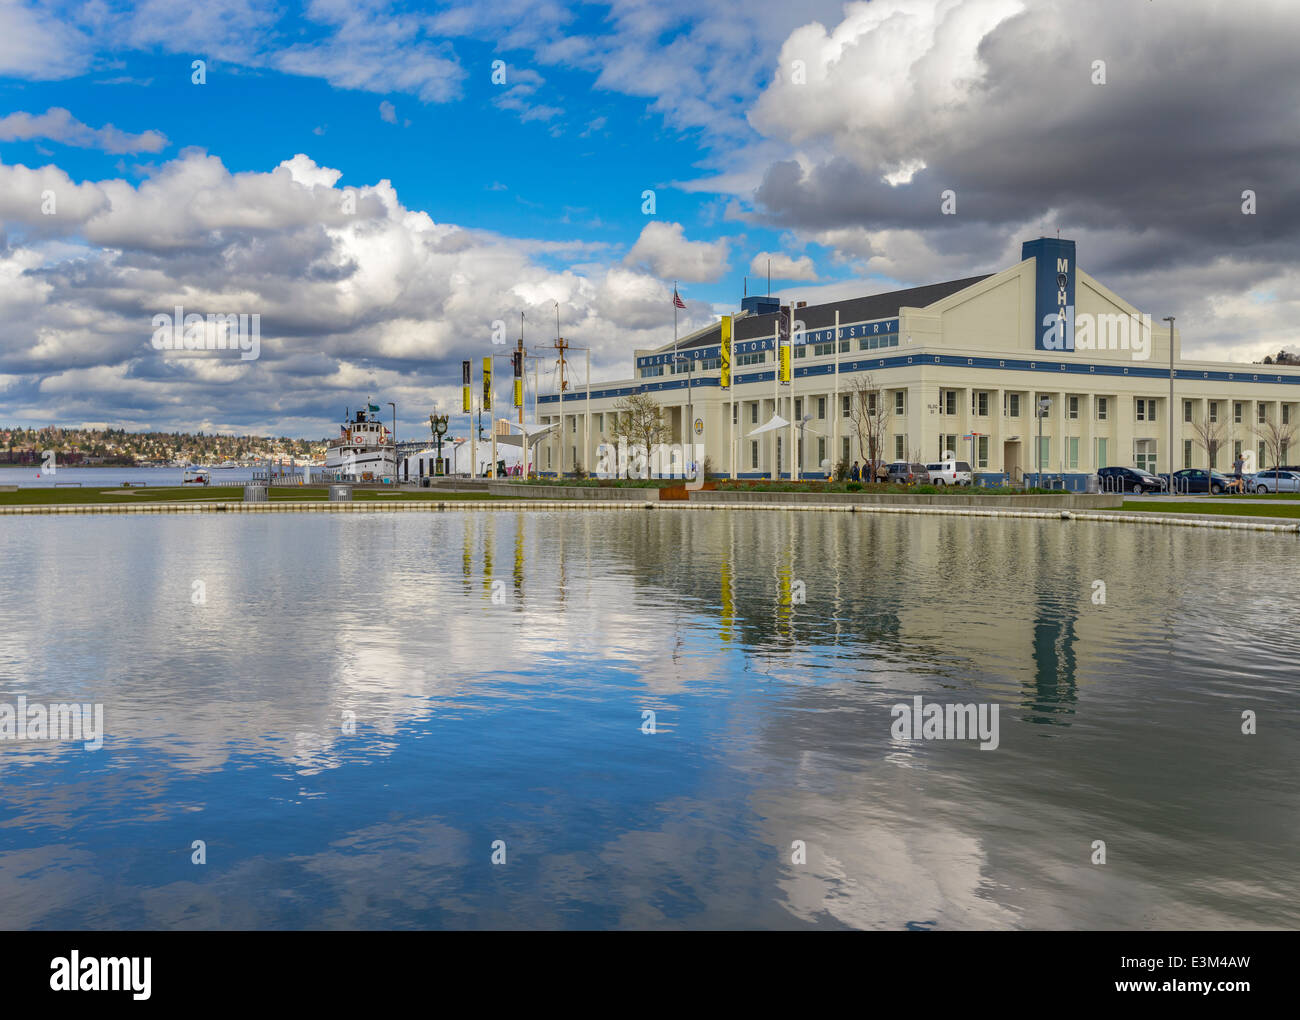 Seattle Washington: Museum of History and Industry and pond reflections at Lake Union Park - Stock Image